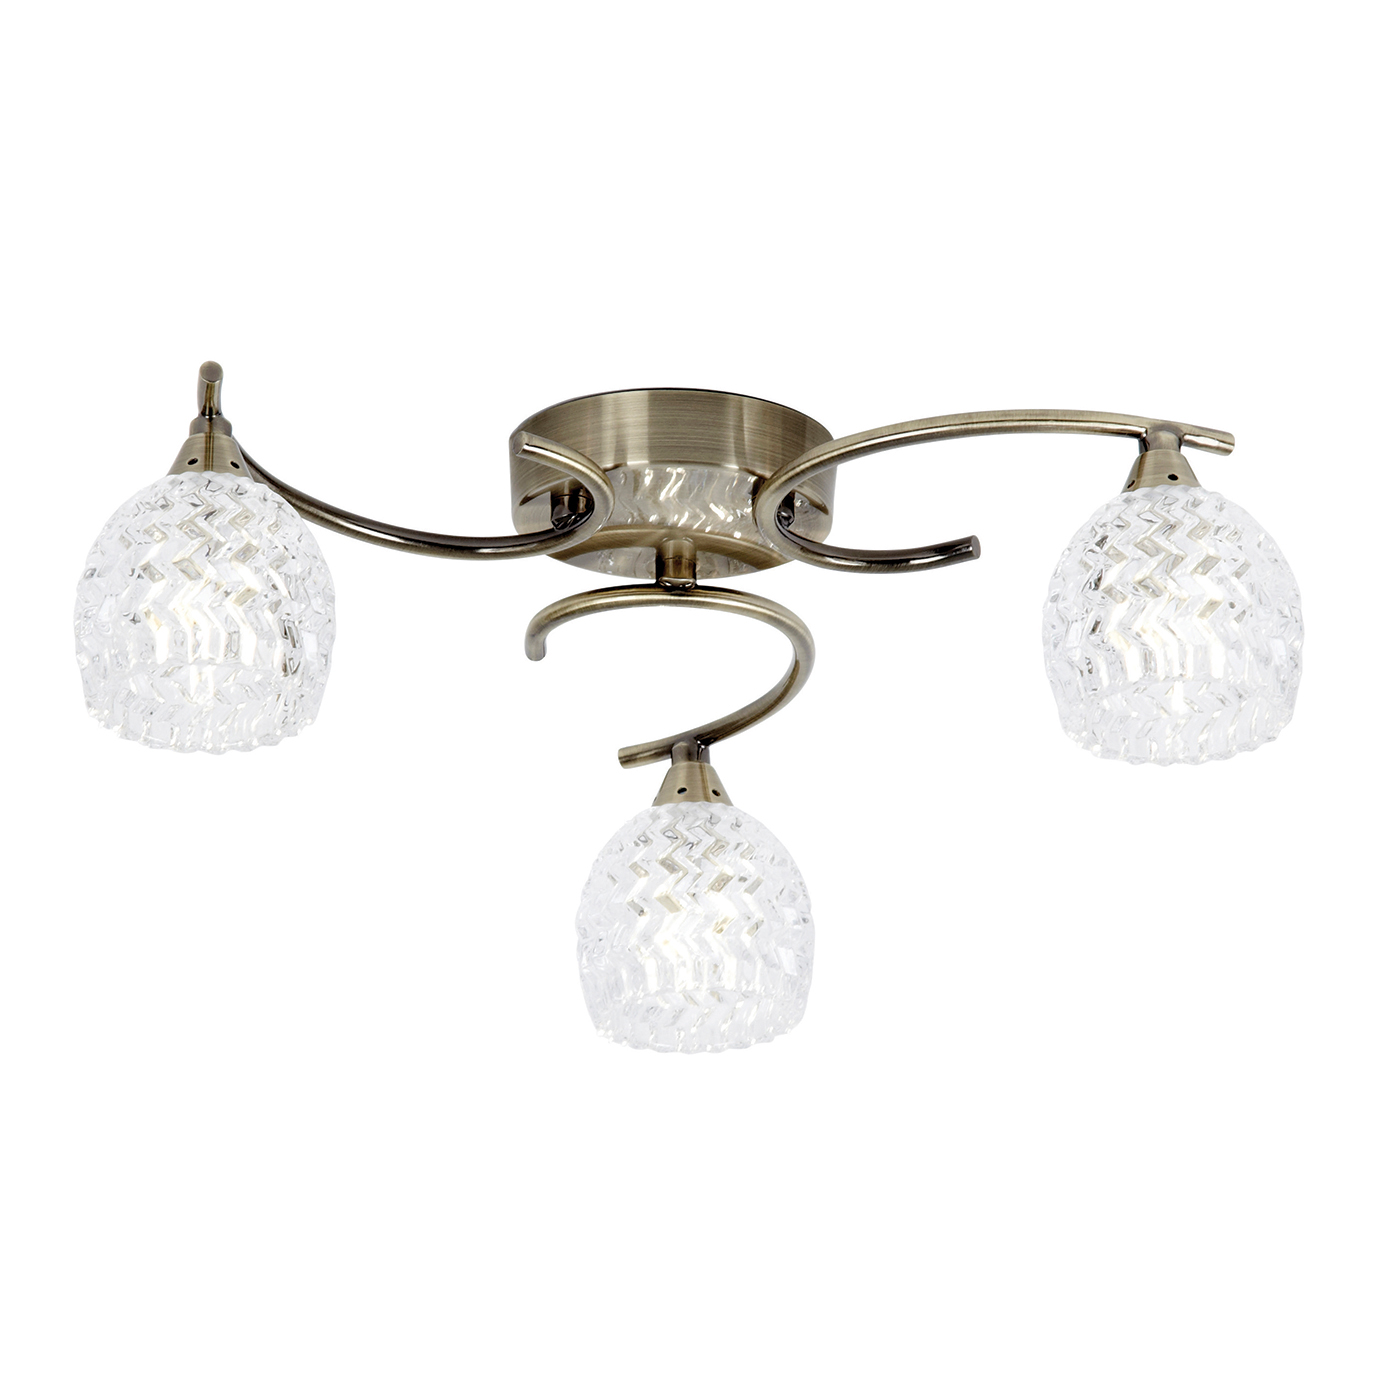 Endon Boyer ceiling light 3x 33W Chrome effect /& clear glass with pattern detail